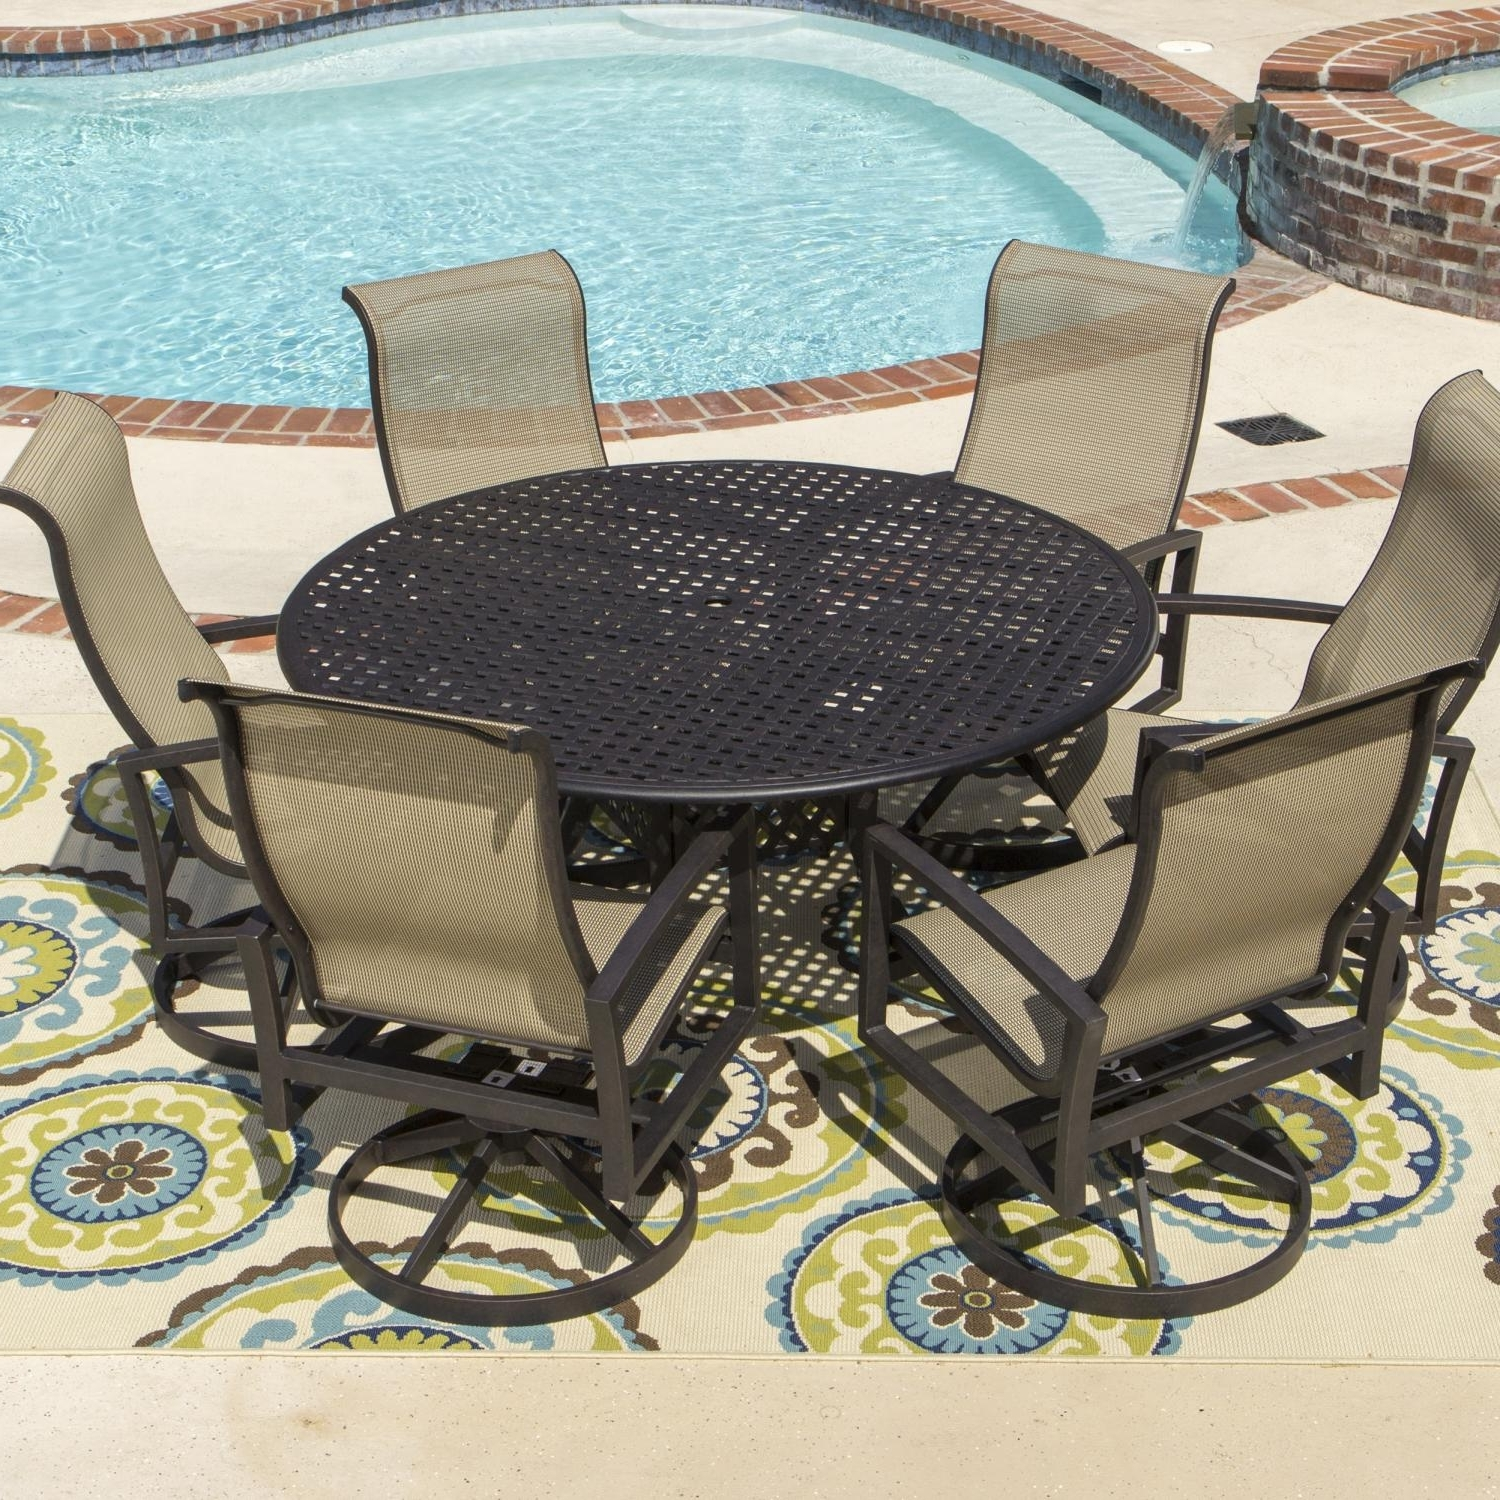 Sling Patio Conversation Sets With Regard To Well Known Acadia 7 Piece Sling Patio Dining Set With Swivel Rockers And Round (View 16 of 20)